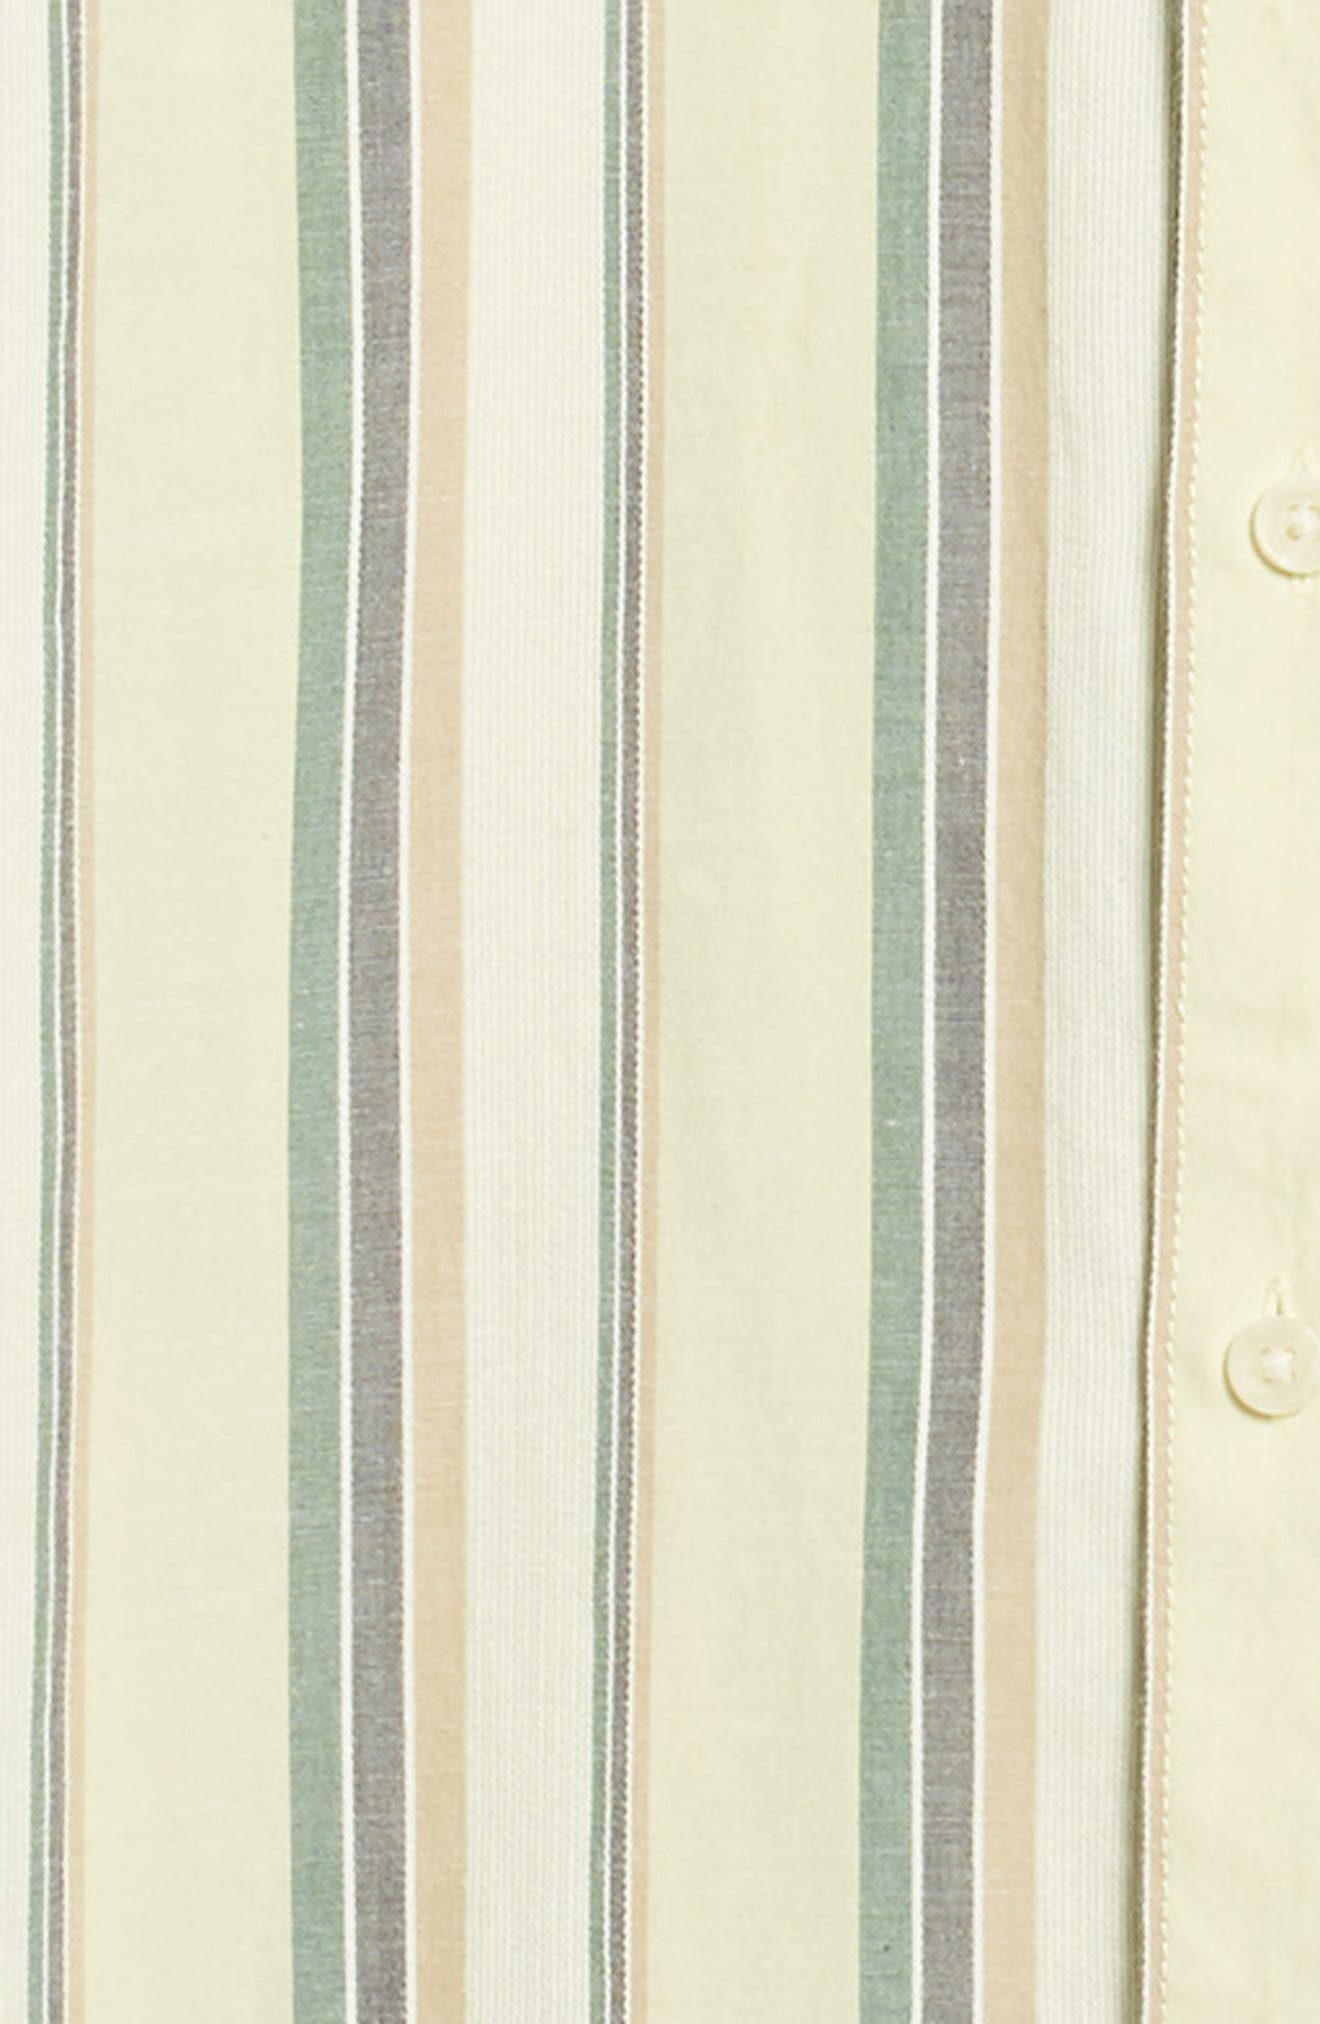 Multitone Stripe Woven Shirt,                             Alternate thumbnail 6, color,                             SAGE